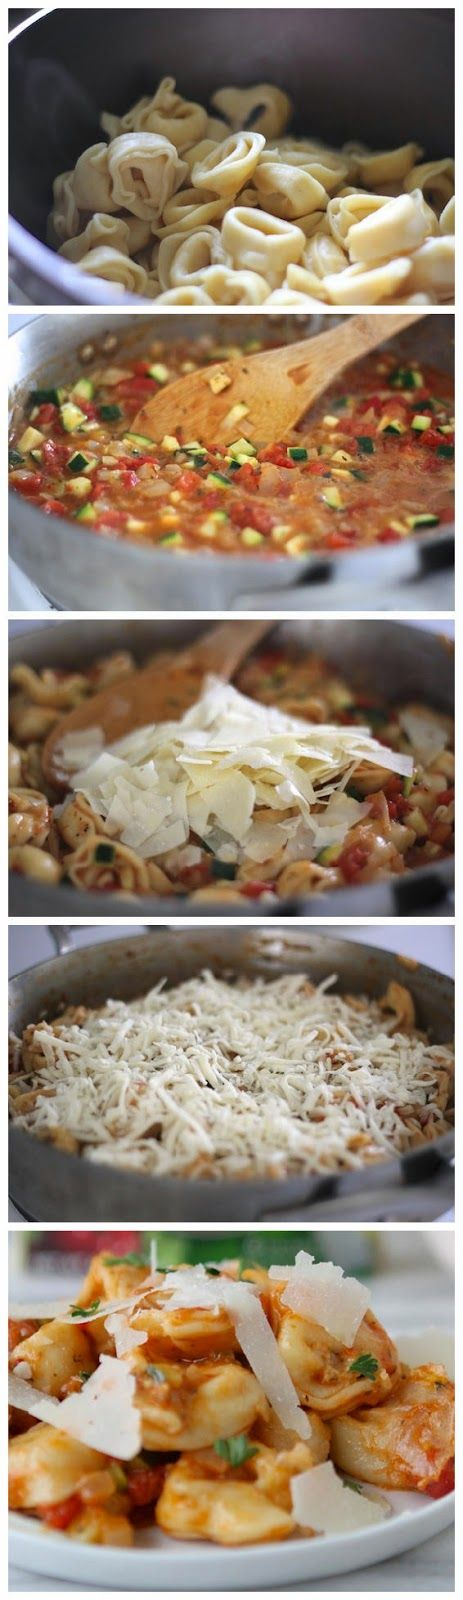 Italian Herb Baked Cheesy Tortellini | Recipes for Braces | Pinterest